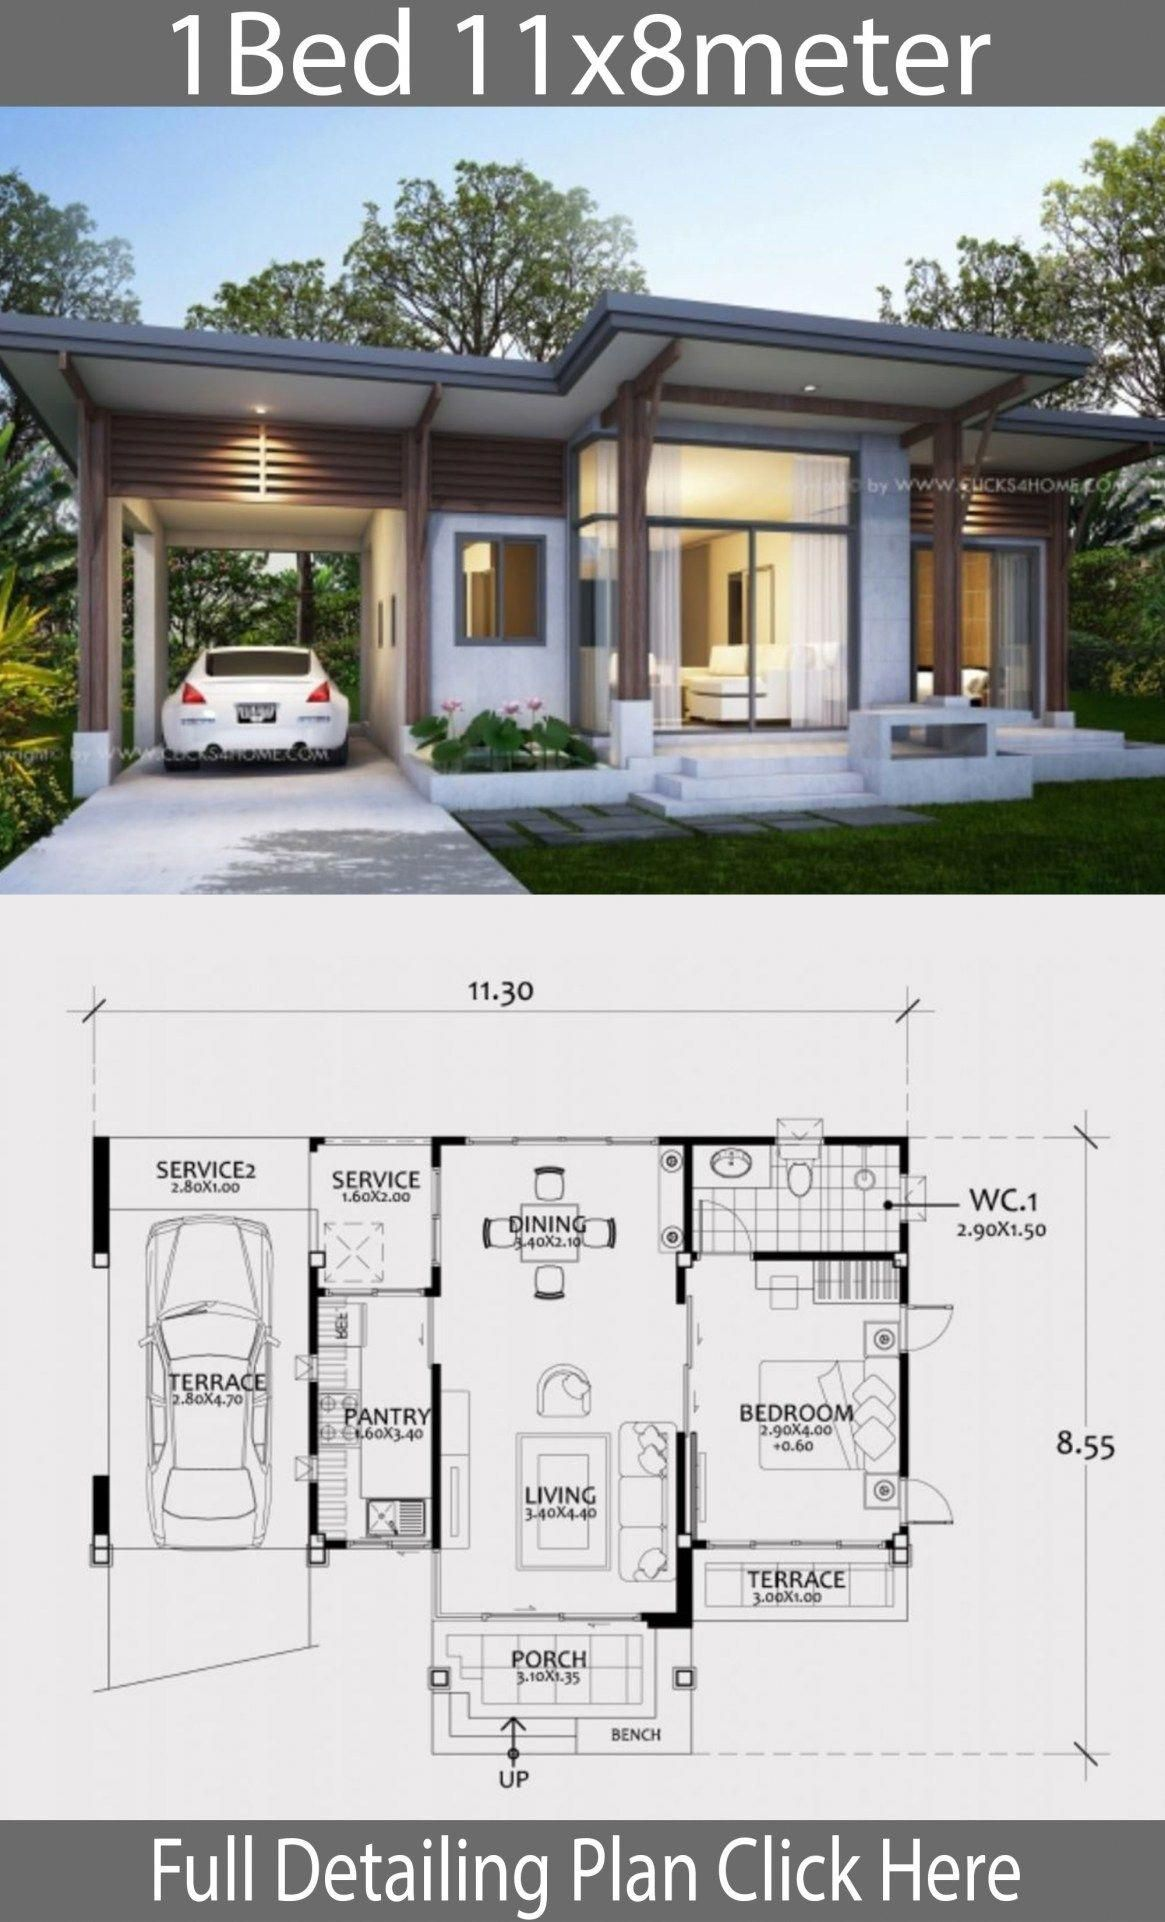 Home Design Plan 11x8m With One Bedroom Home Design With Plansearch Homeinteriordesigns Modern Bungalow House Bungalow House Design Contemporary House Plans